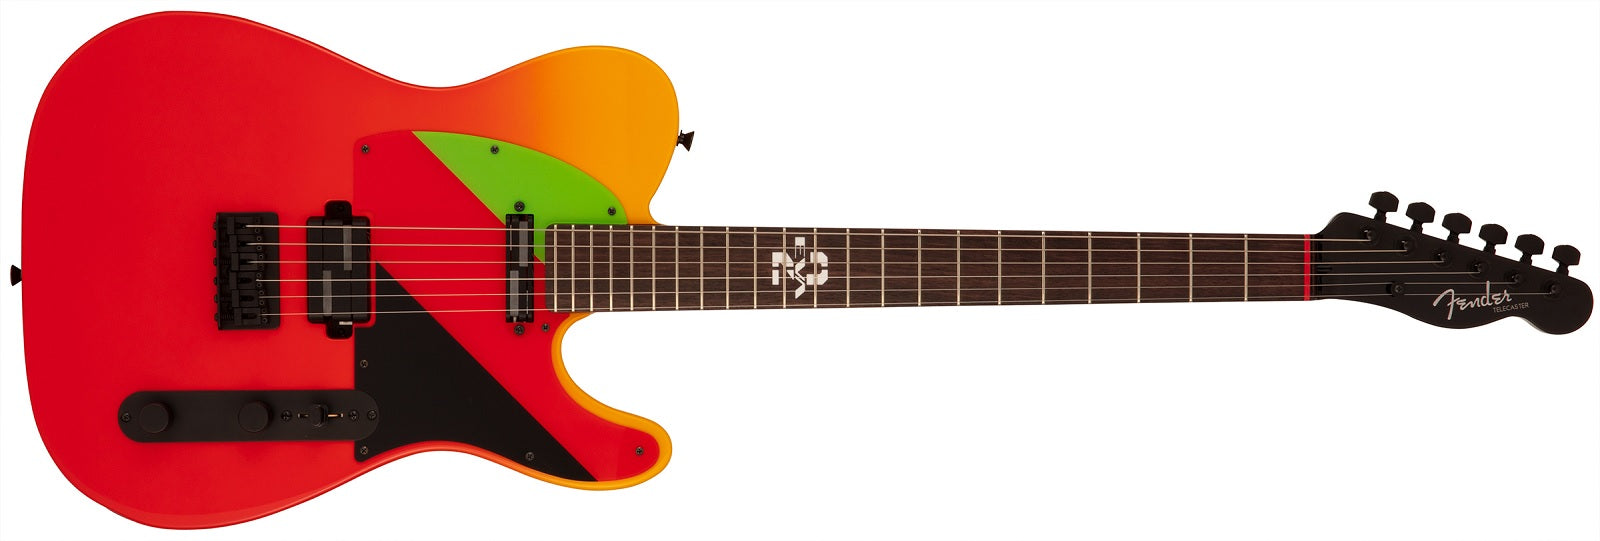 Fender 2020 Evangelion Asuka Telecaster Limited Edition